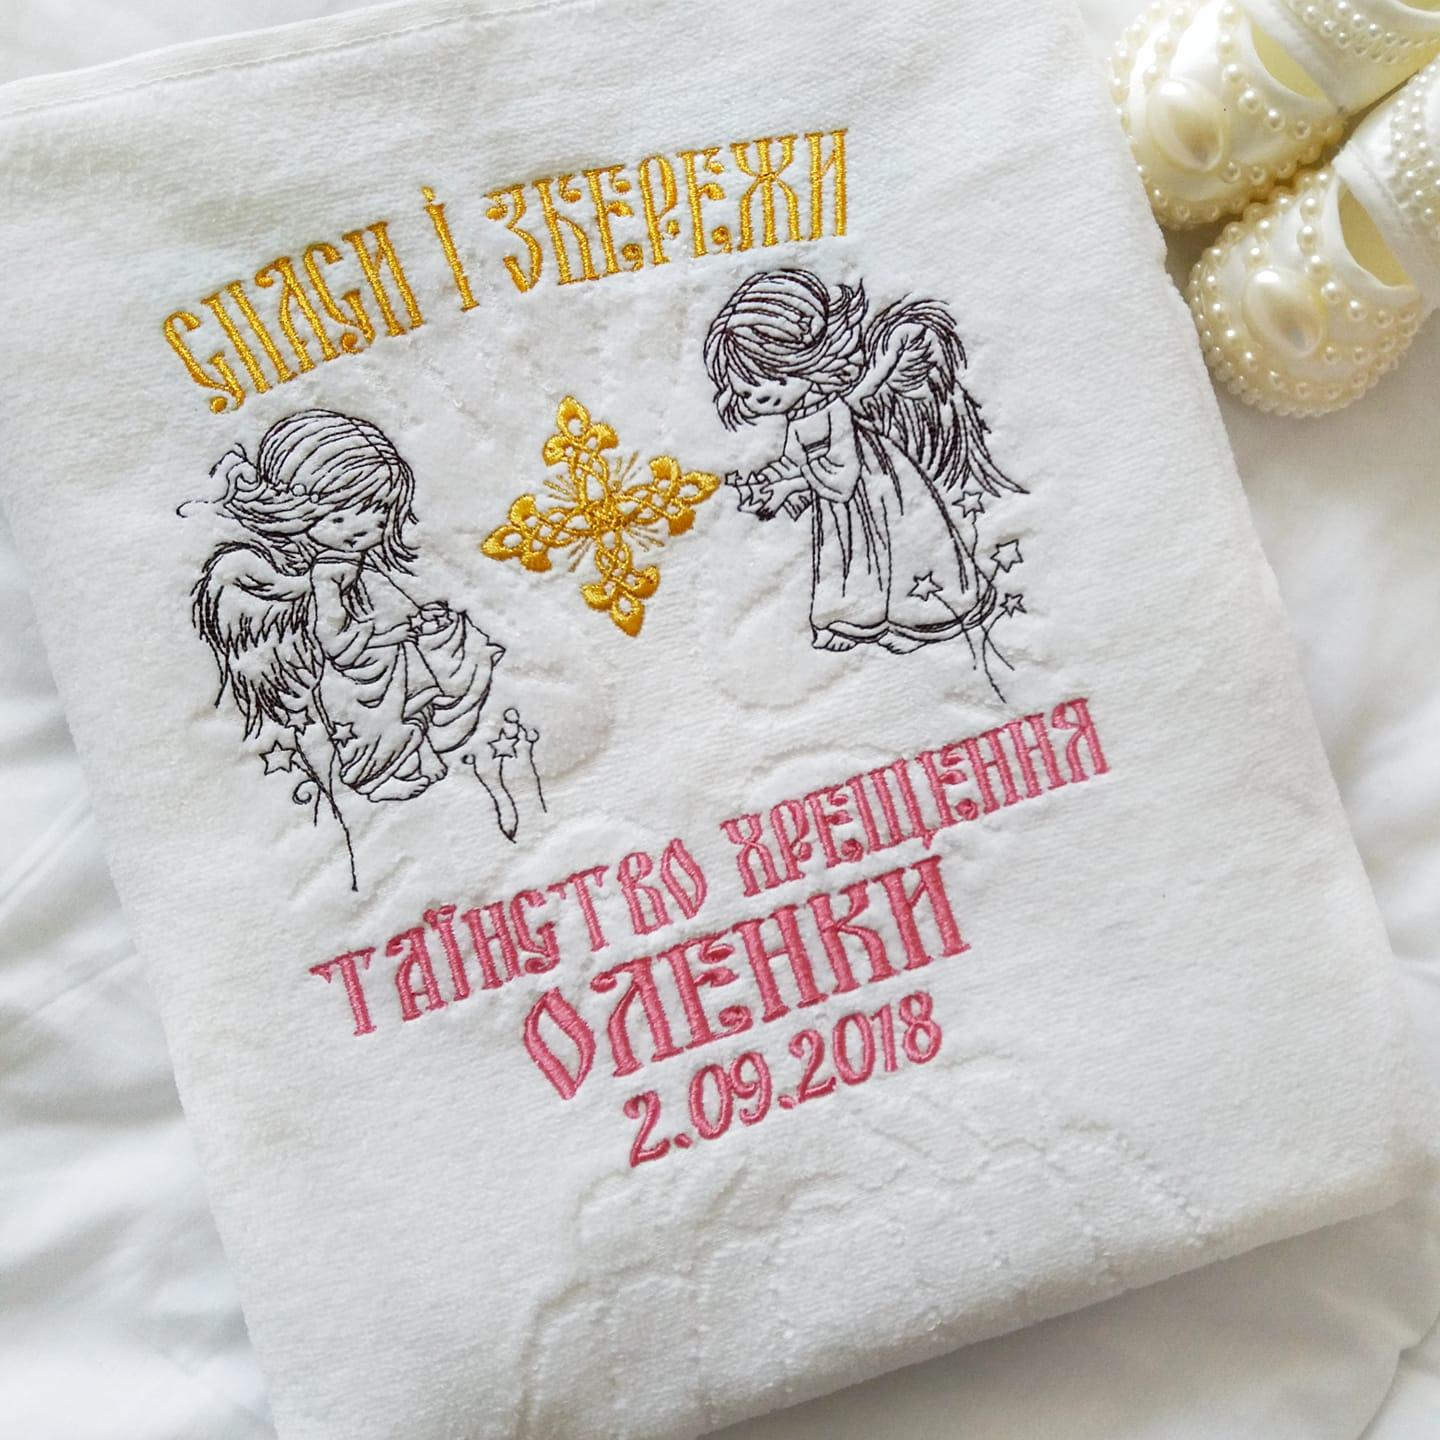 Embroidered towel with star angels design